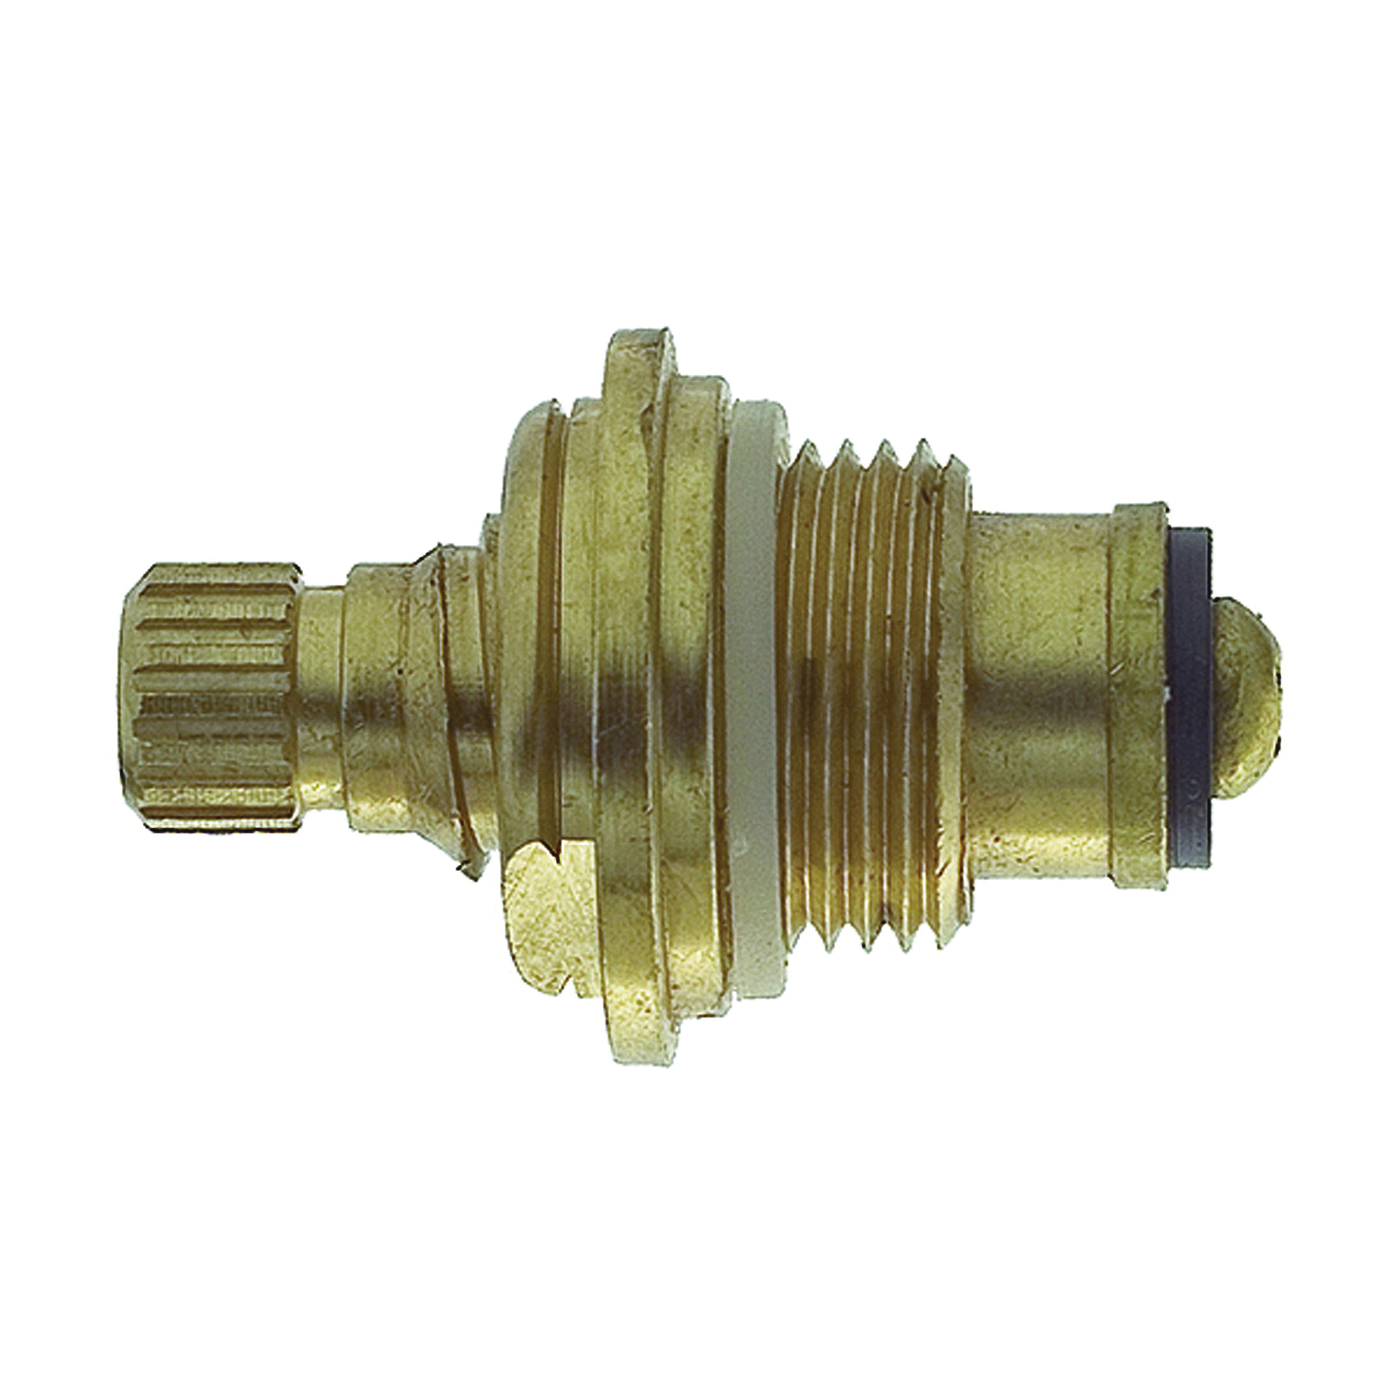 Picture of Danco 15641E Faucet Stem, Brass, Brass, 1-21/32 in L, For: Streamway 108 Series Two-Handle Sink and Lavatory Faucets